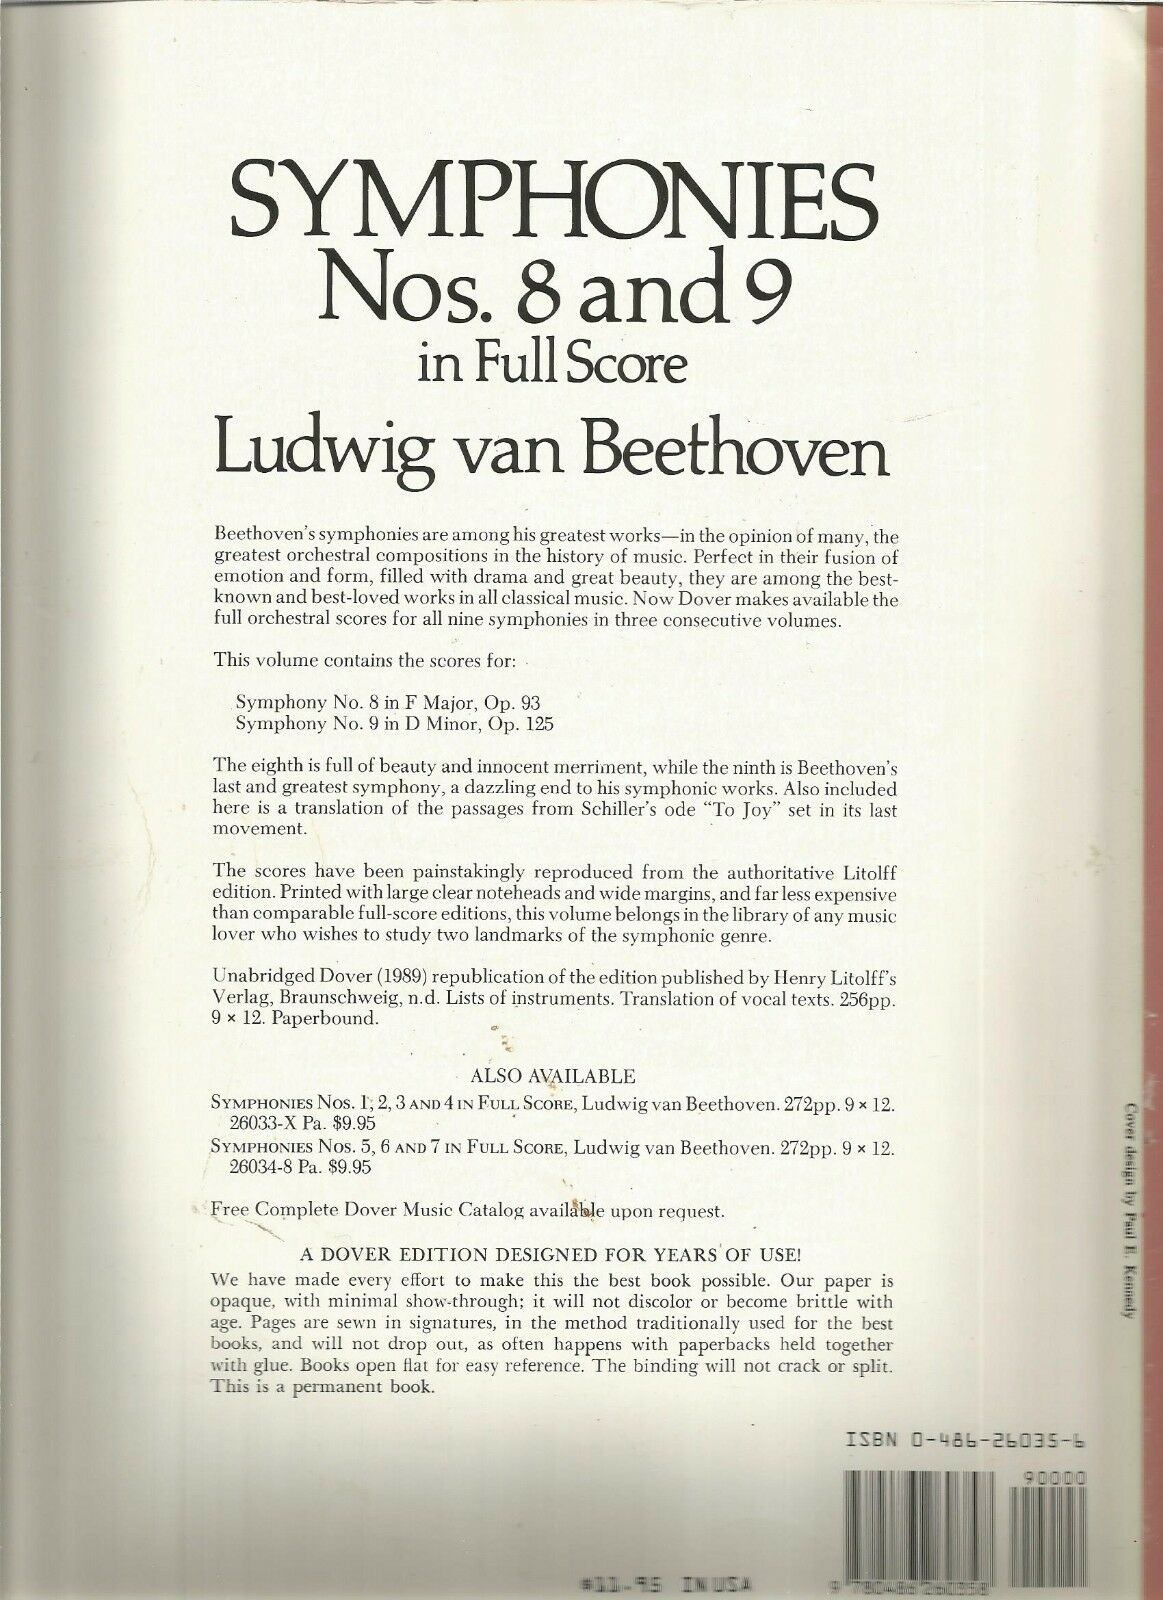 Dover Music Scores: Symphonies Nos. 8 and 9 in Full Score by Ludwig van  Beethoven (1989, Paperback) | eBay